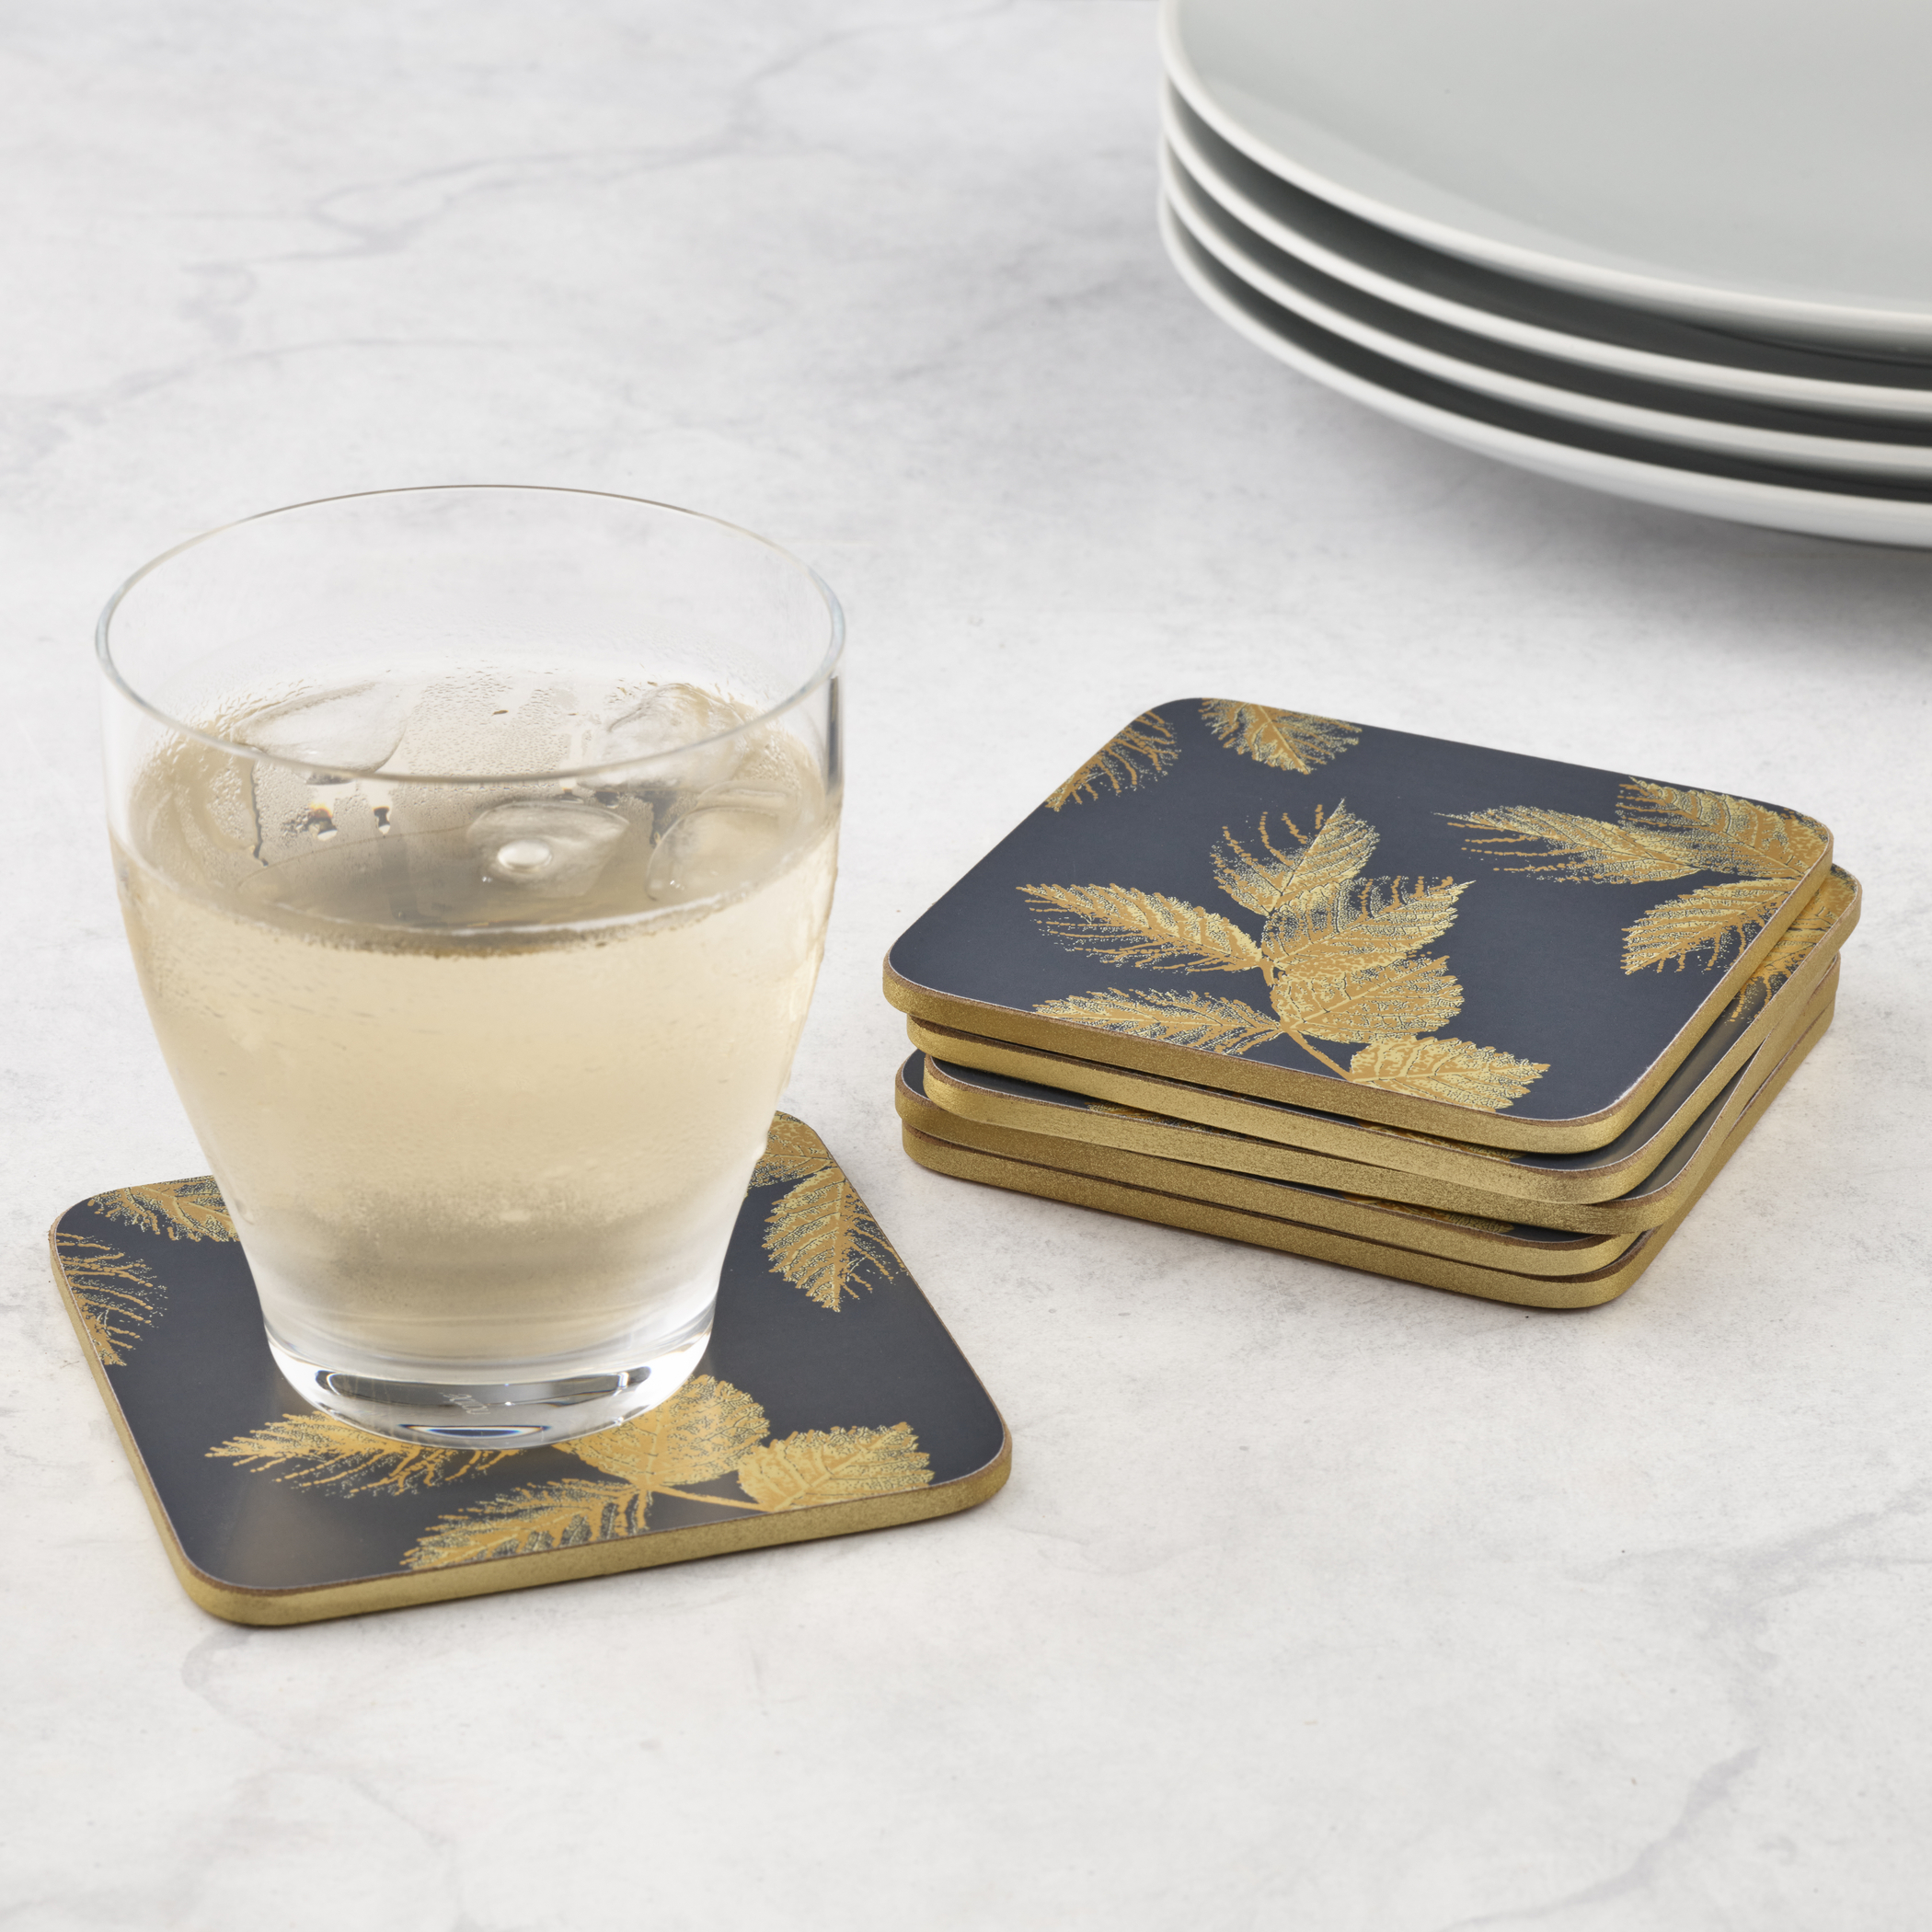 Sara Miller London for Pimpernel Etched Leaves Coasters Set of 6 Navy image number 4